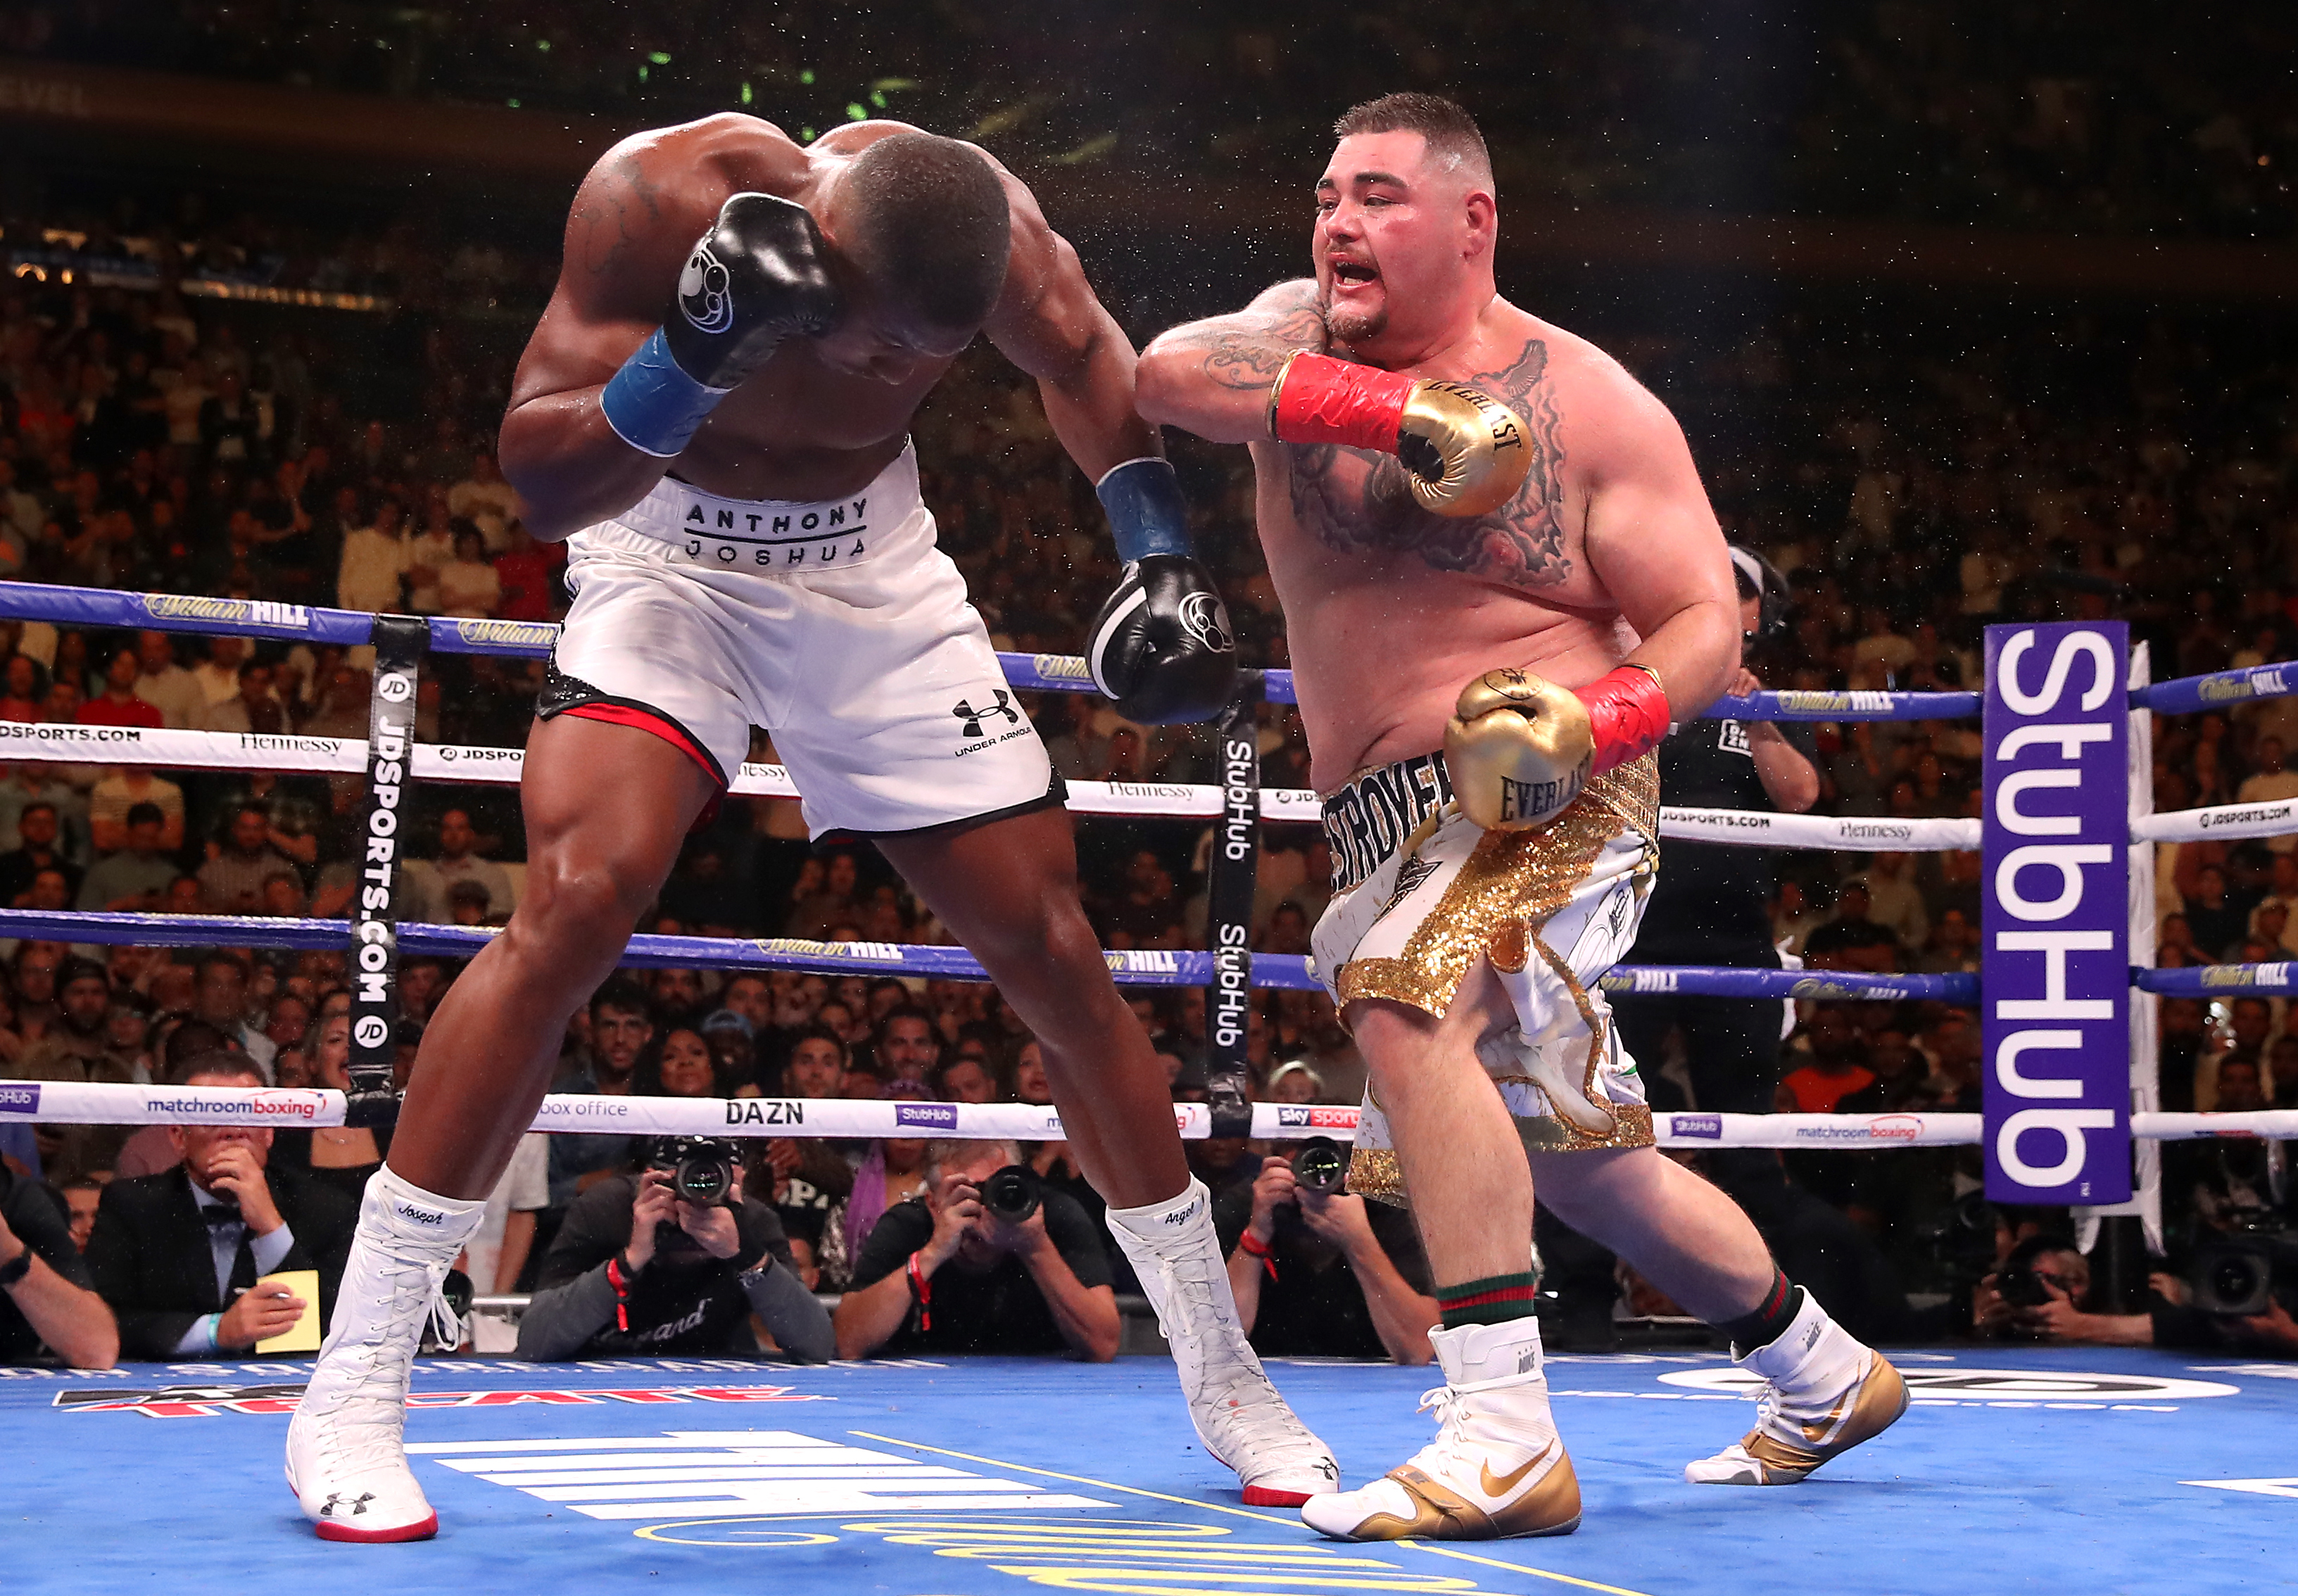 Joshua-Ruiz rematch set for Saudi Arabia